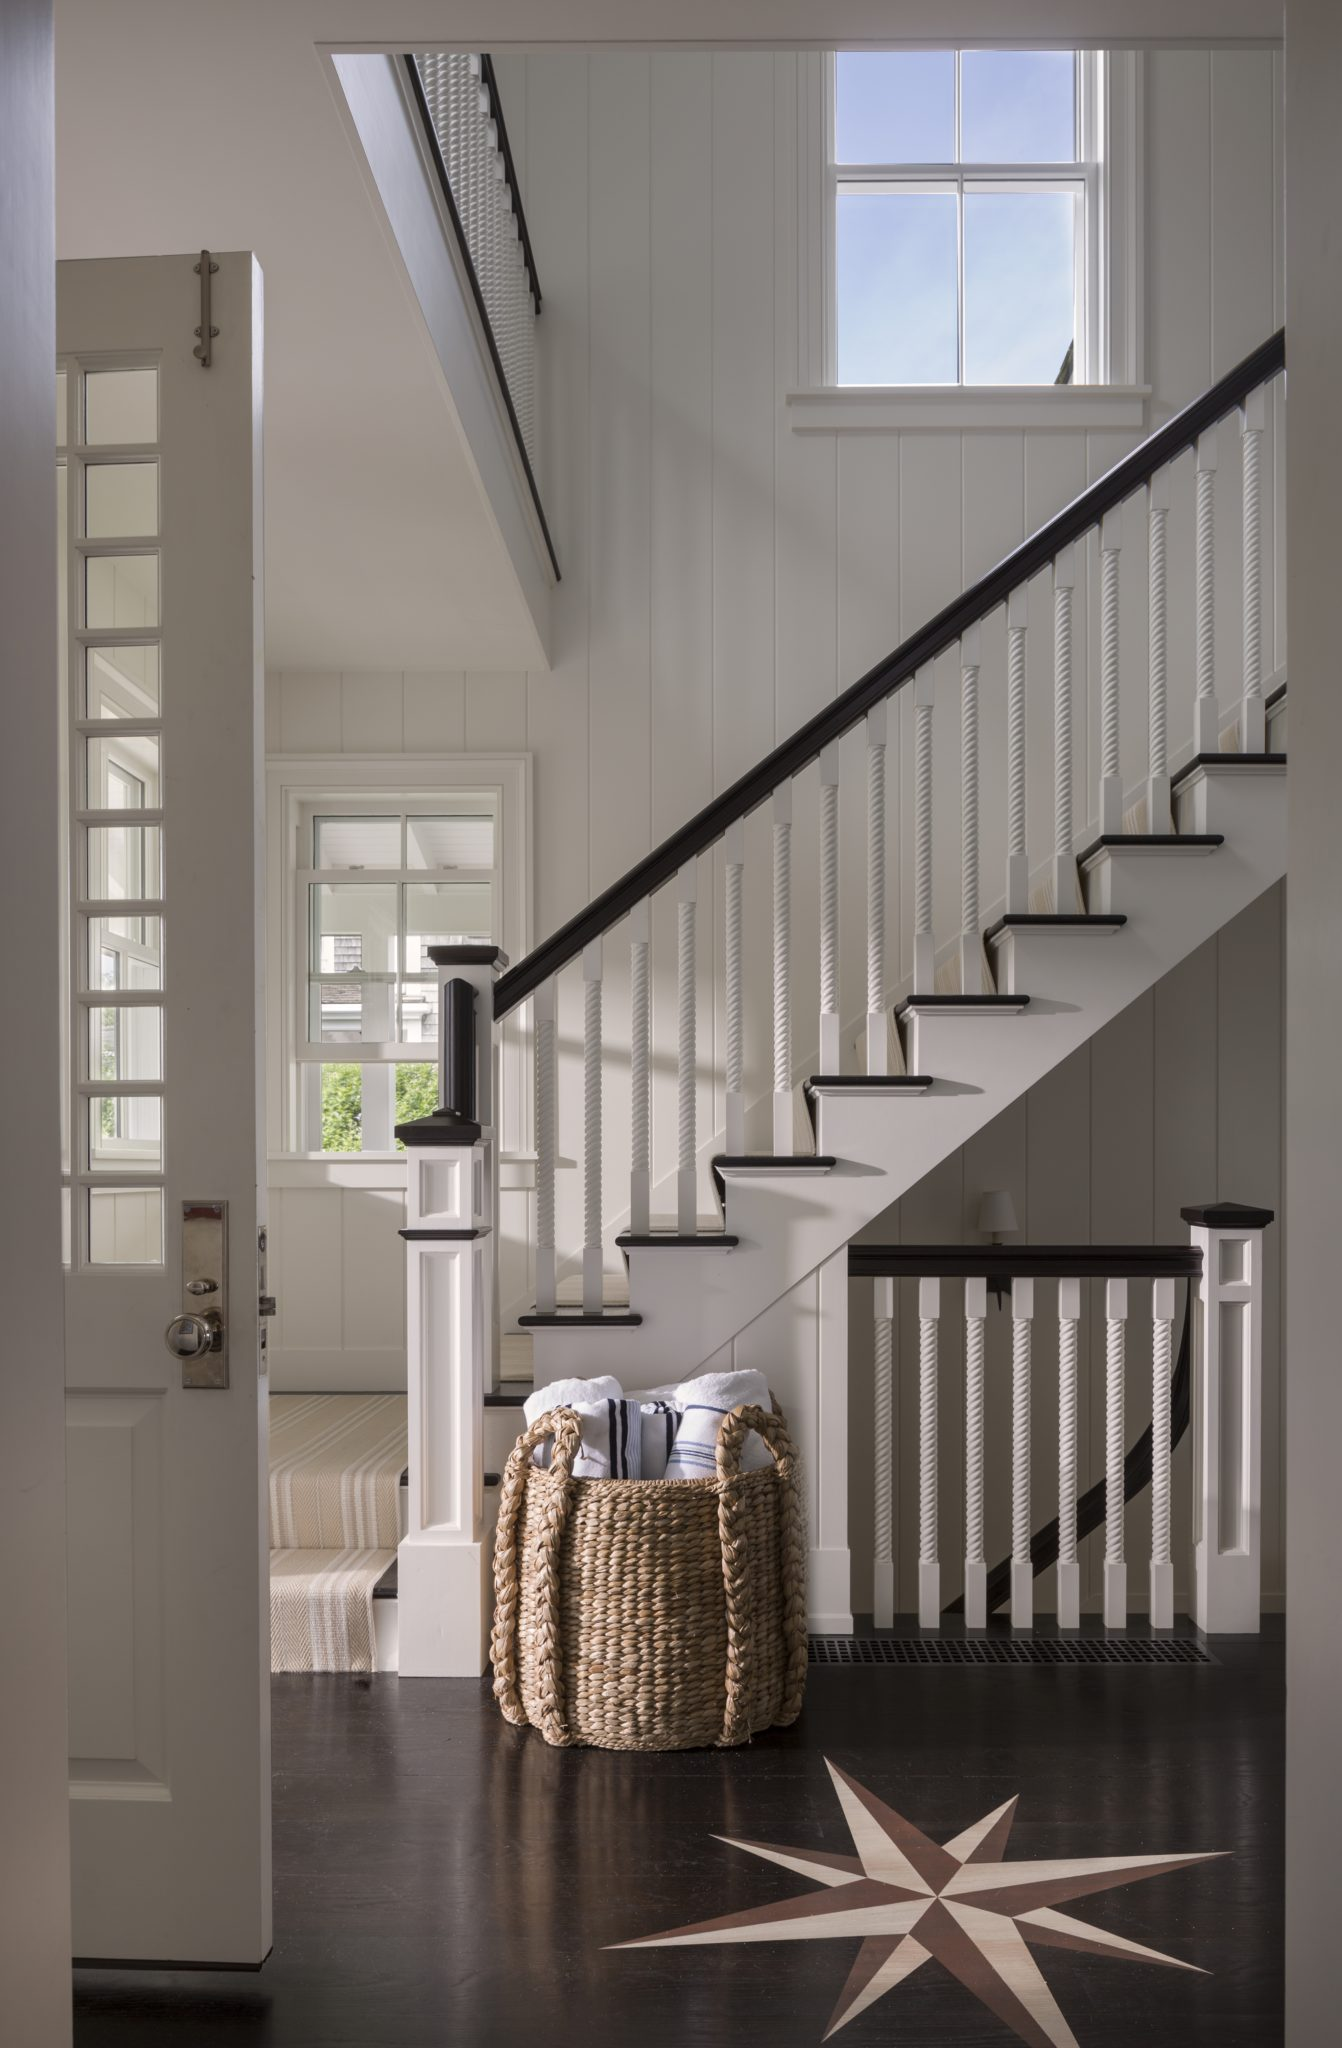 Airy entry way with starburst floor inlay, white molding and dark wood accents by SLC Interiors